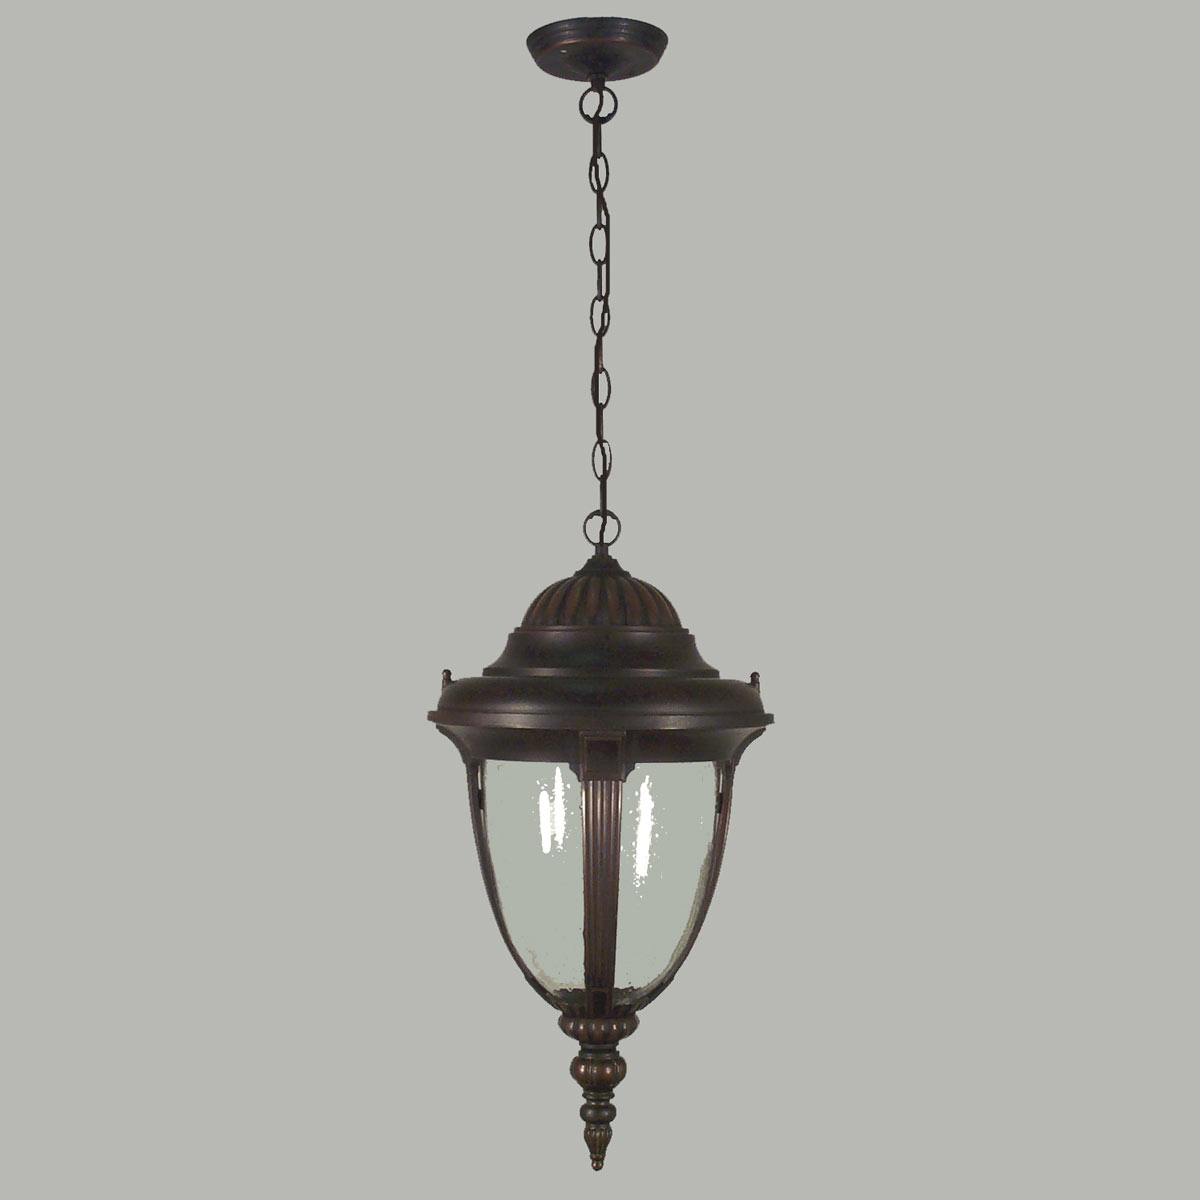 Single Chain Pendant Light